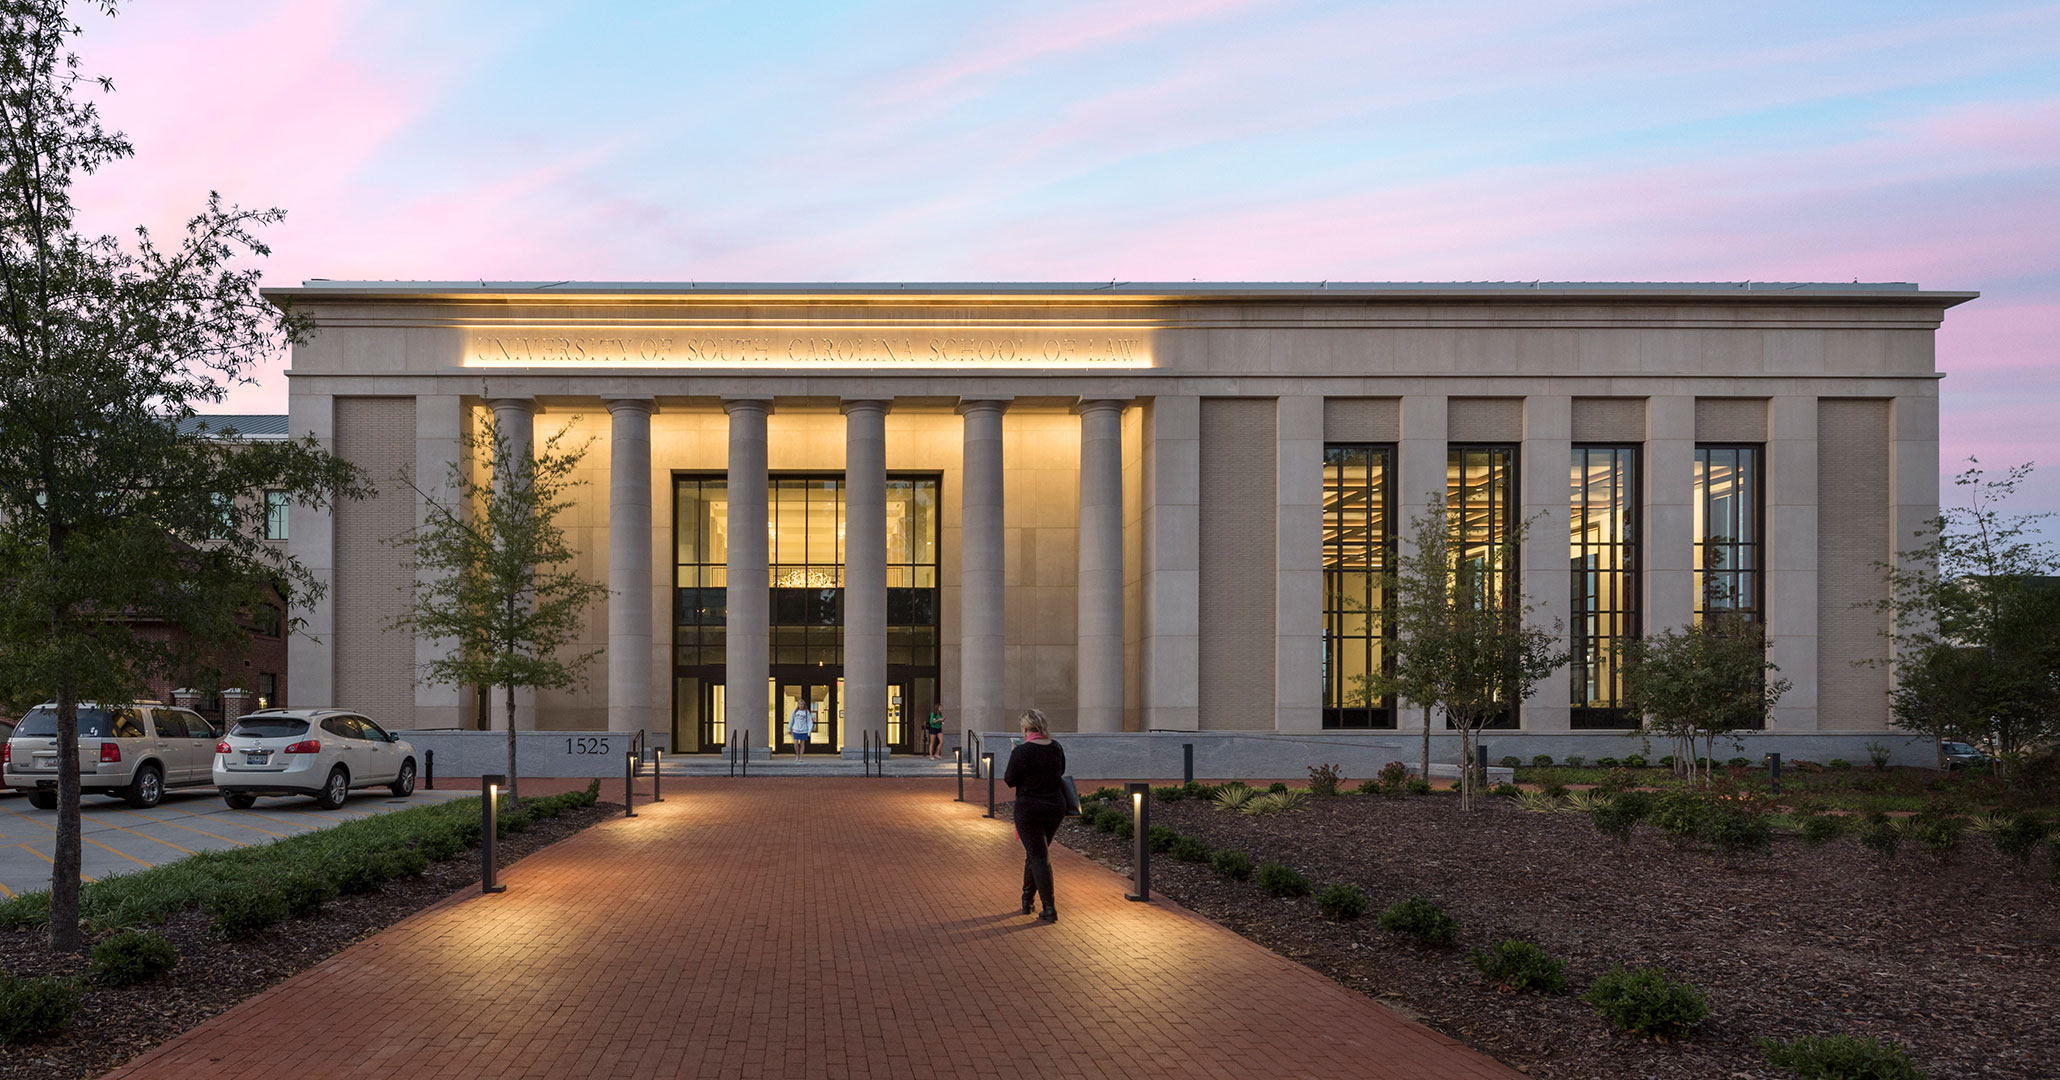 The University of South Carolina worked with Boudreaux architects to design the new Law School.